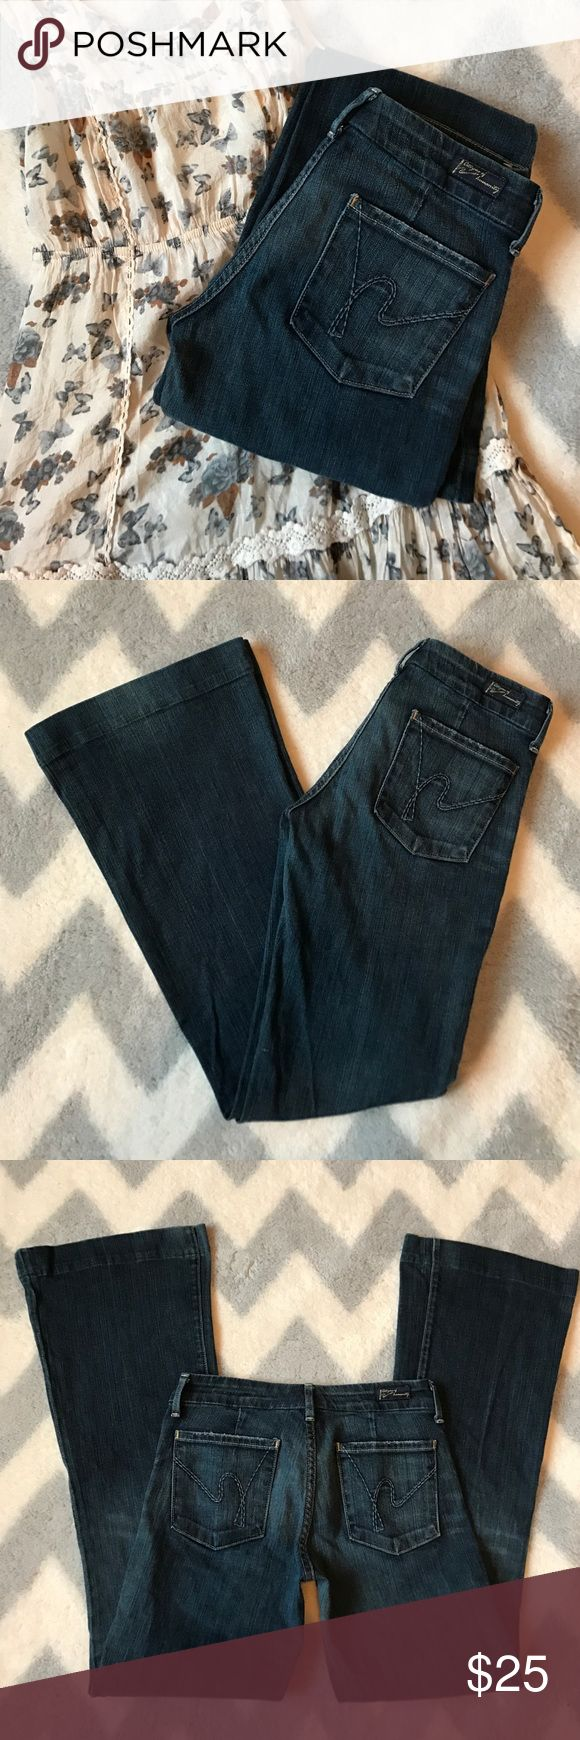 🦋 SALE! Citizens of Humanity jeans Citizens of Humanity jeans, style is Faye #003 stretch, low waisted full leg. Excellent condition no rips or stains. Citizens of Humanity Jeans